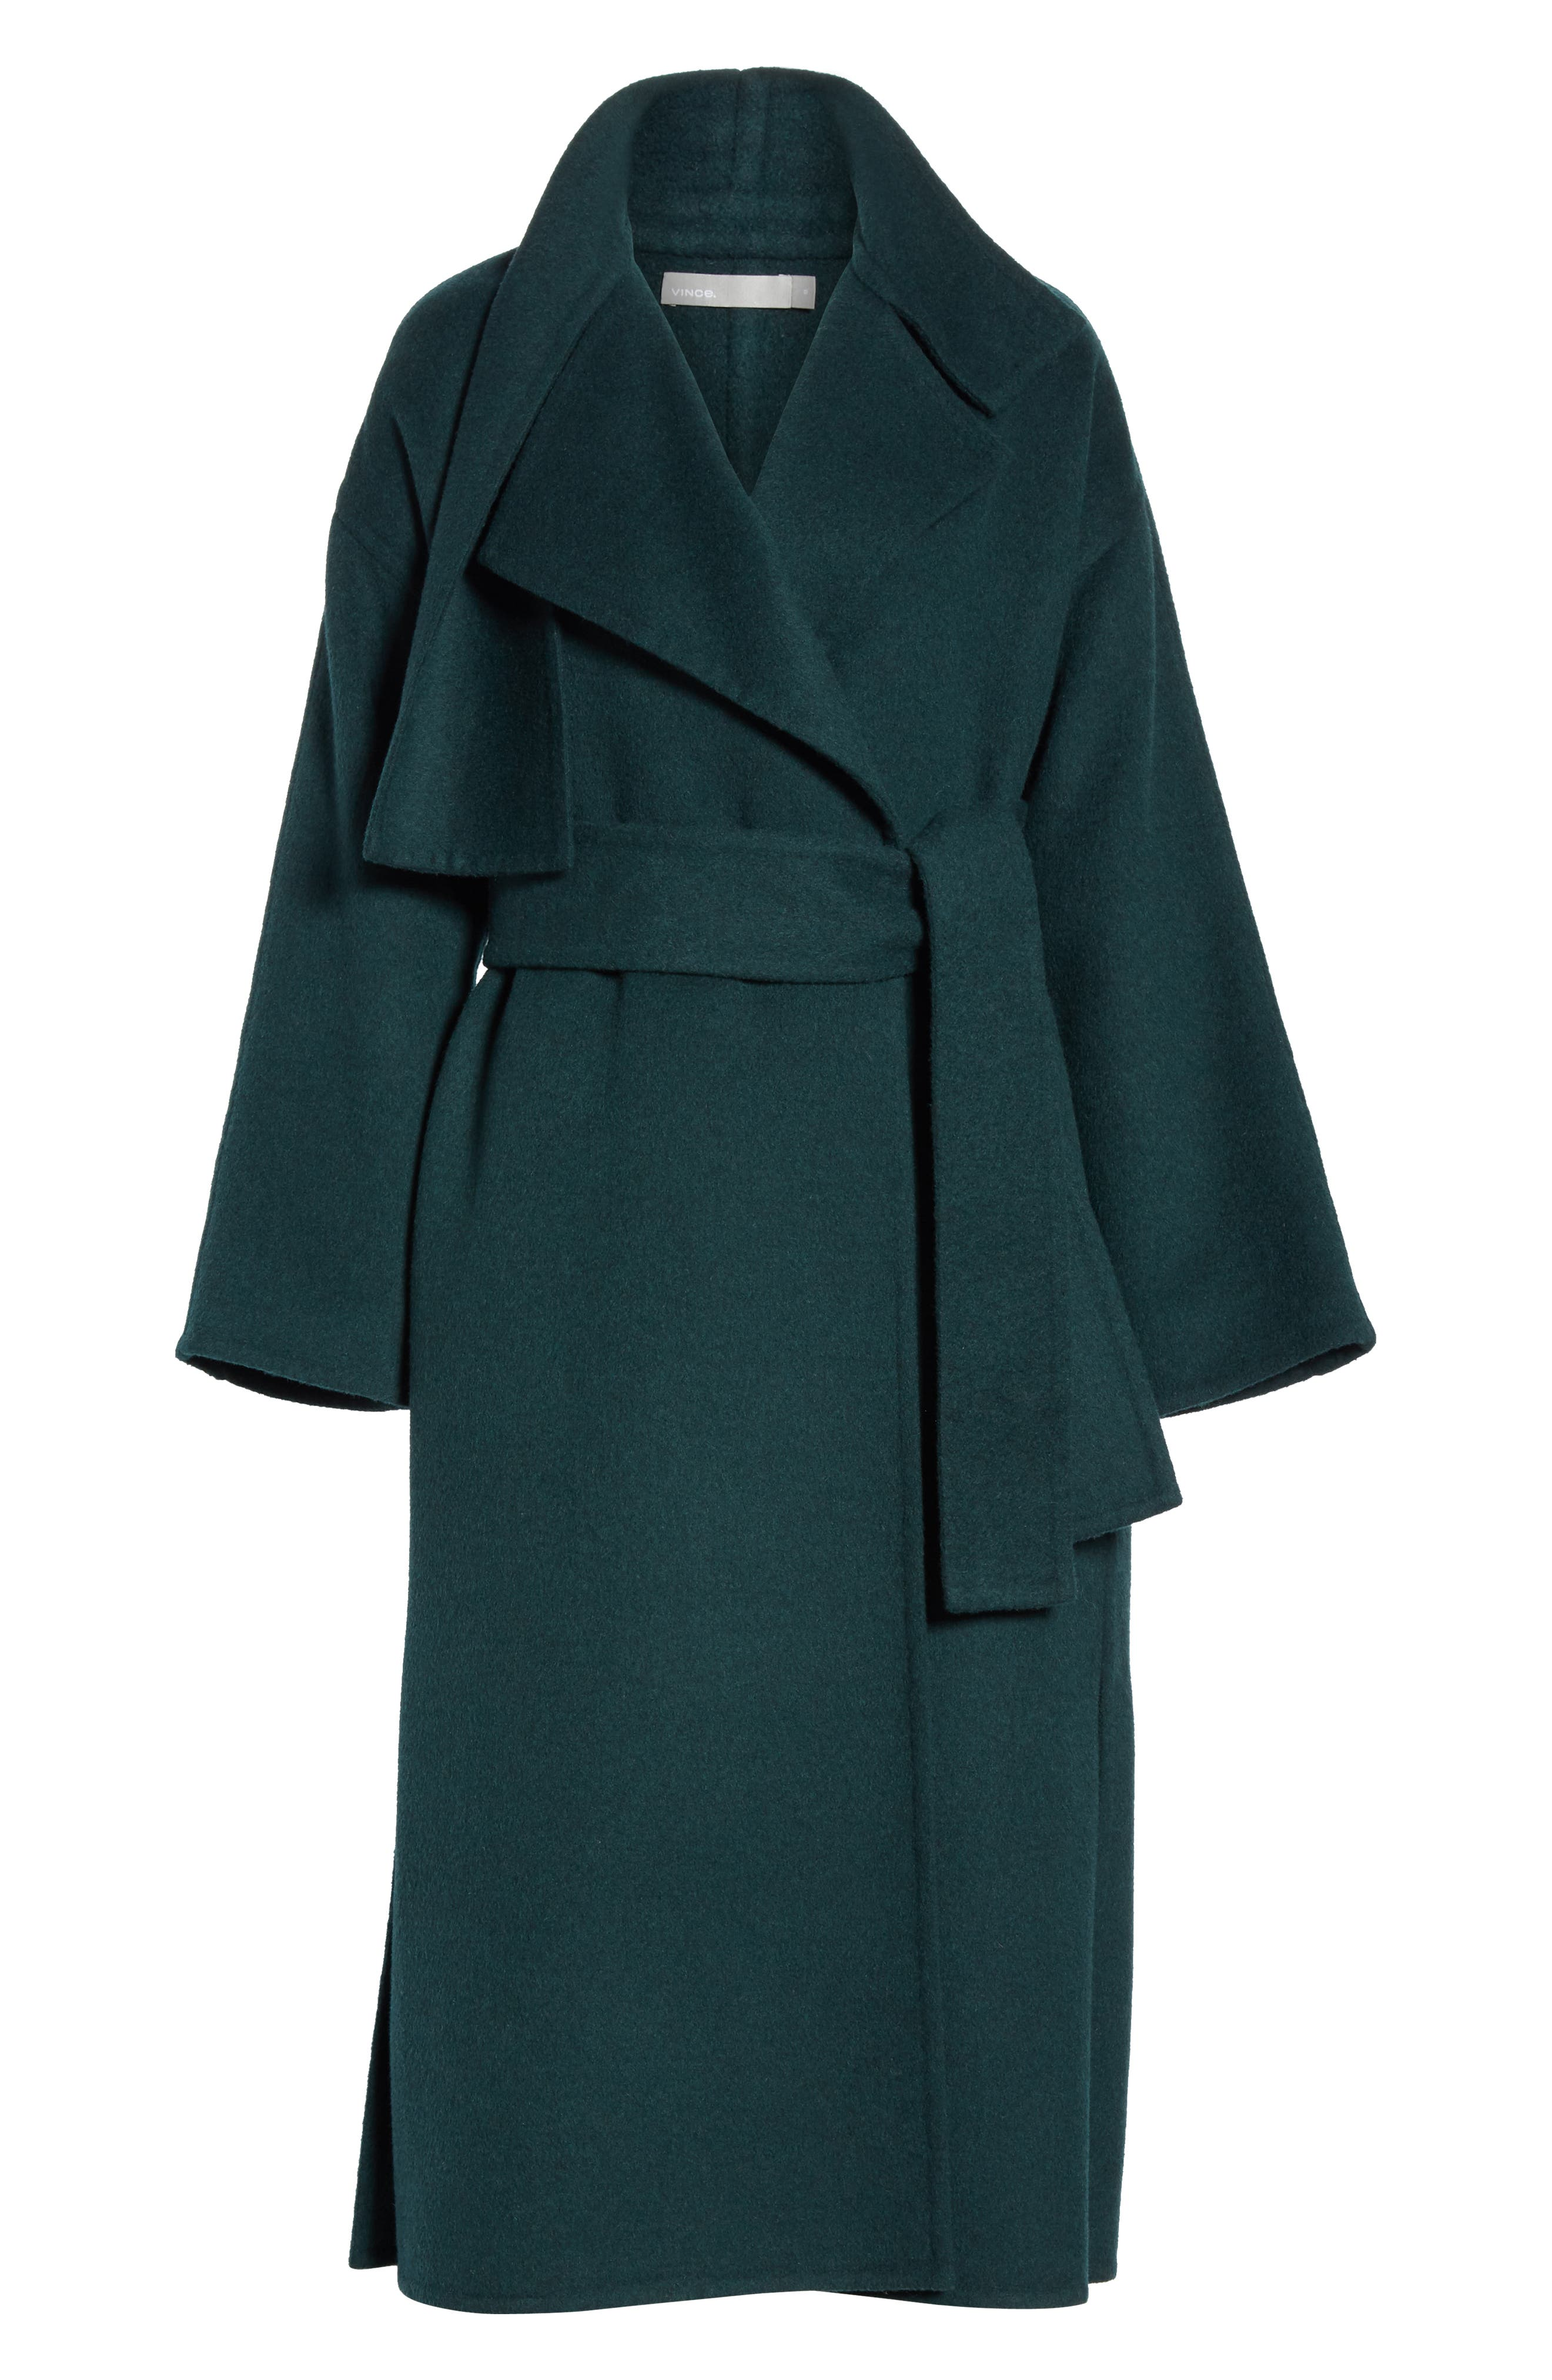 Belted Wool Blend Cozy Coat,                             Alternate thumbnail 6, color,                             306